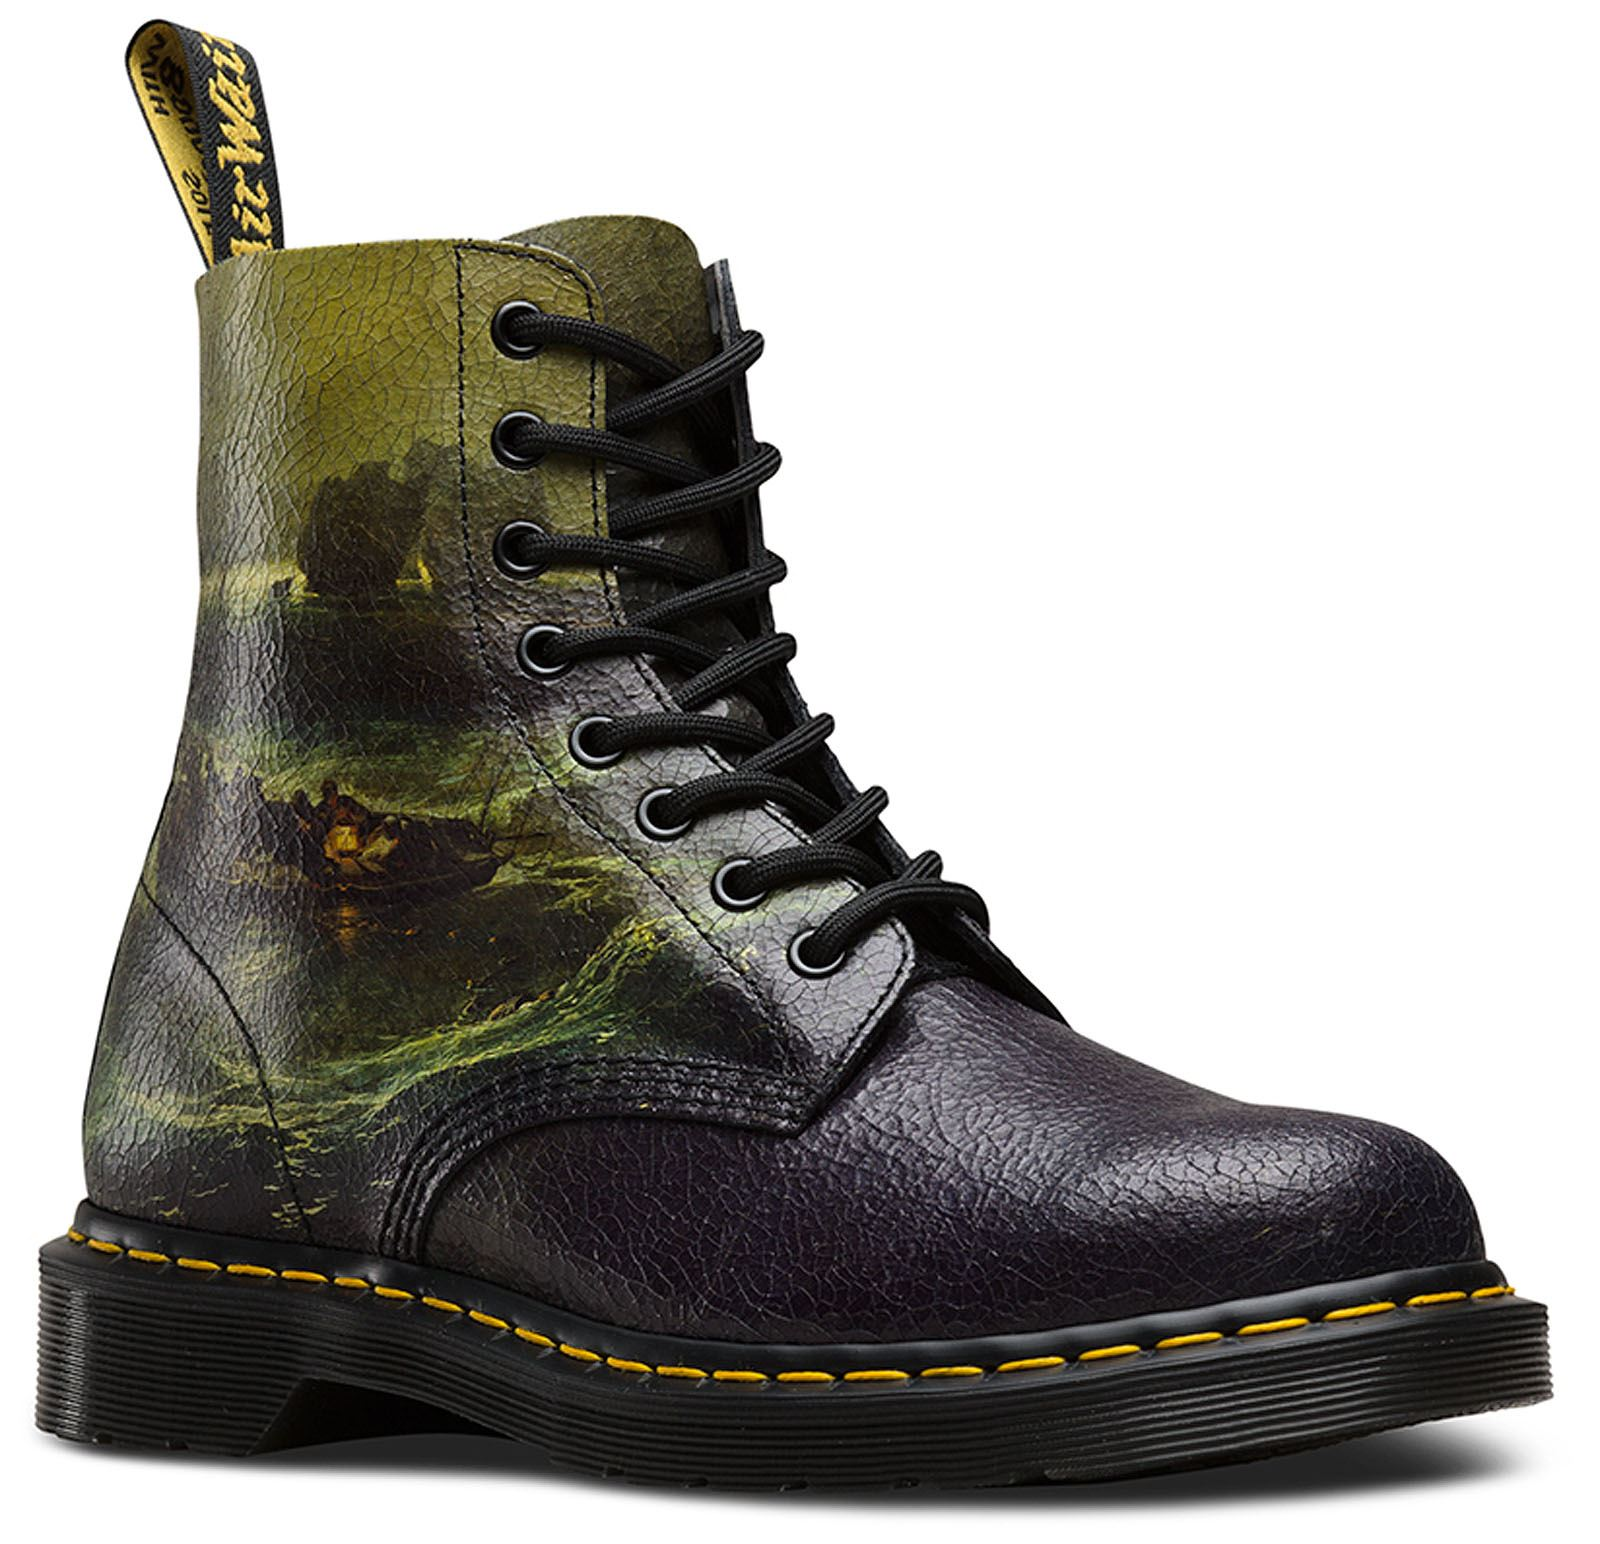 Dr-Martens-Pascal-Tate-Gallery-Turner-Fisherman-Cristal-Suede-Leather-Boots